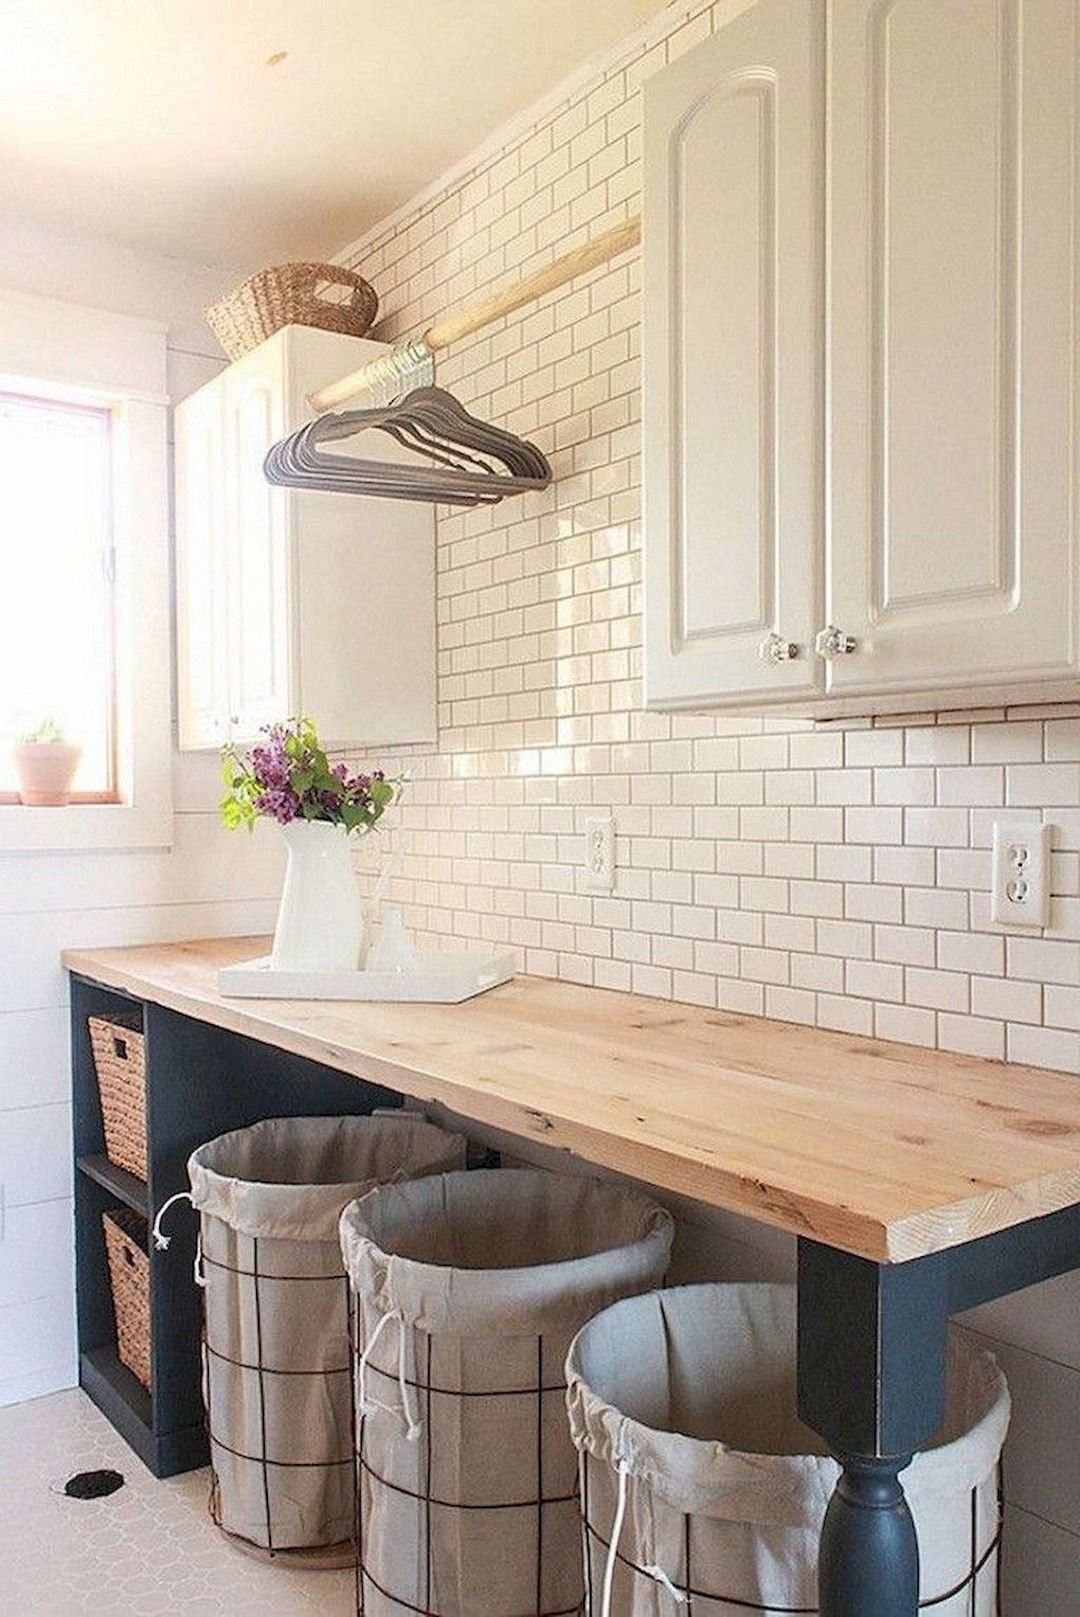 53 Modern Farmhouse Laundry Room Decoration Ideas #modernfarmhouse